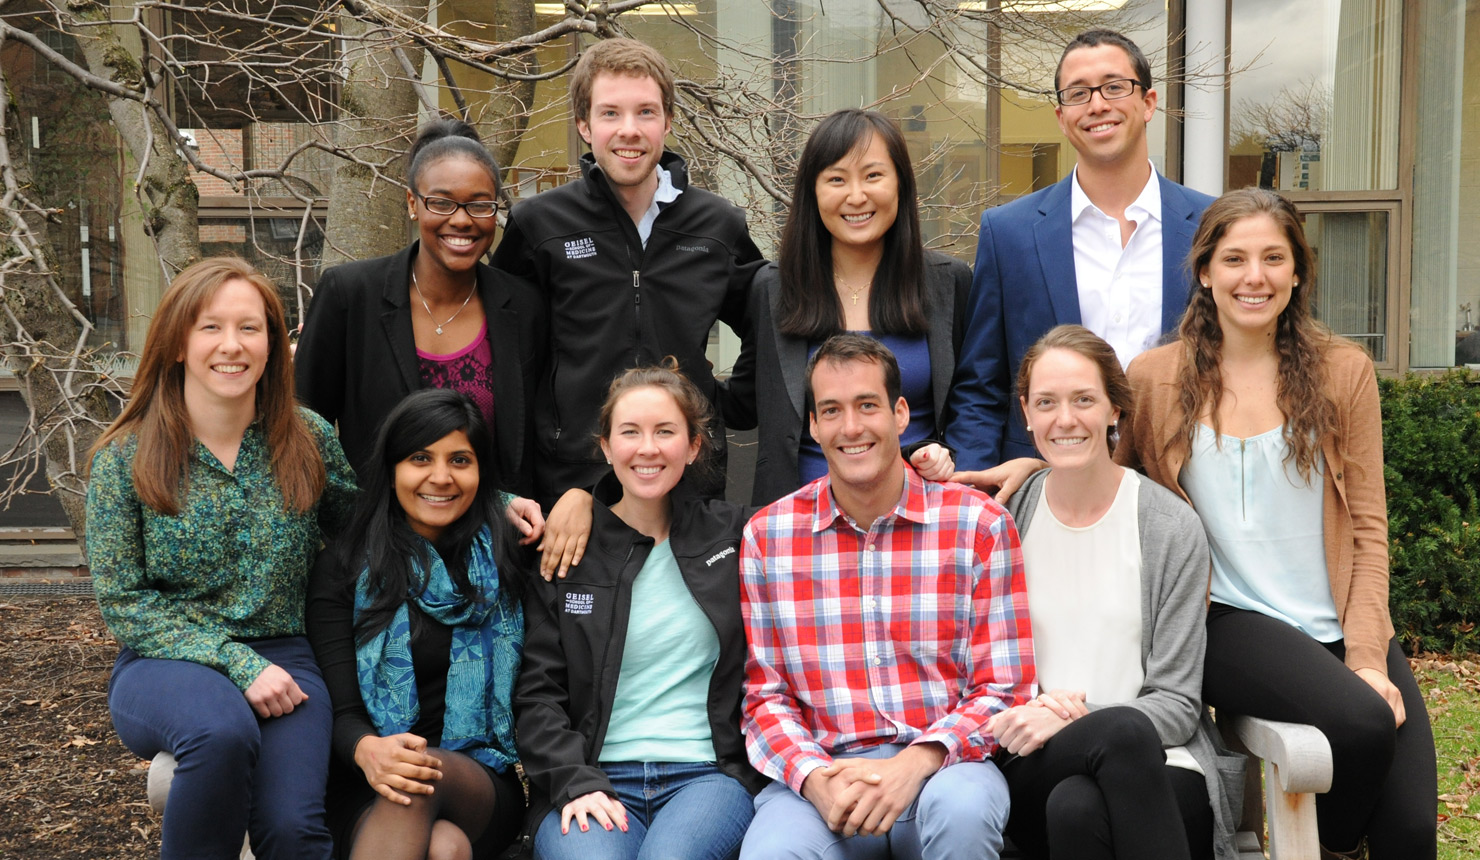 Ten first-year students from the Geisel School of Medicine at Dartmouth will lead projects for underserved communities through the Schweitzer Fellows Program. Front row, left to right: Ashley Hamel, Sumitha Raman, Claire Hogue, Brendin Beaulieu-Jones, Ana Rodriguez-Villa, Nayrana Carneiro. Back row, left to right: Marvah Hill Pierre-Louis, John Mascari, Ahra Cho, Alexander Soto-Edwards. Photo credit: Jon Gilbert Fox